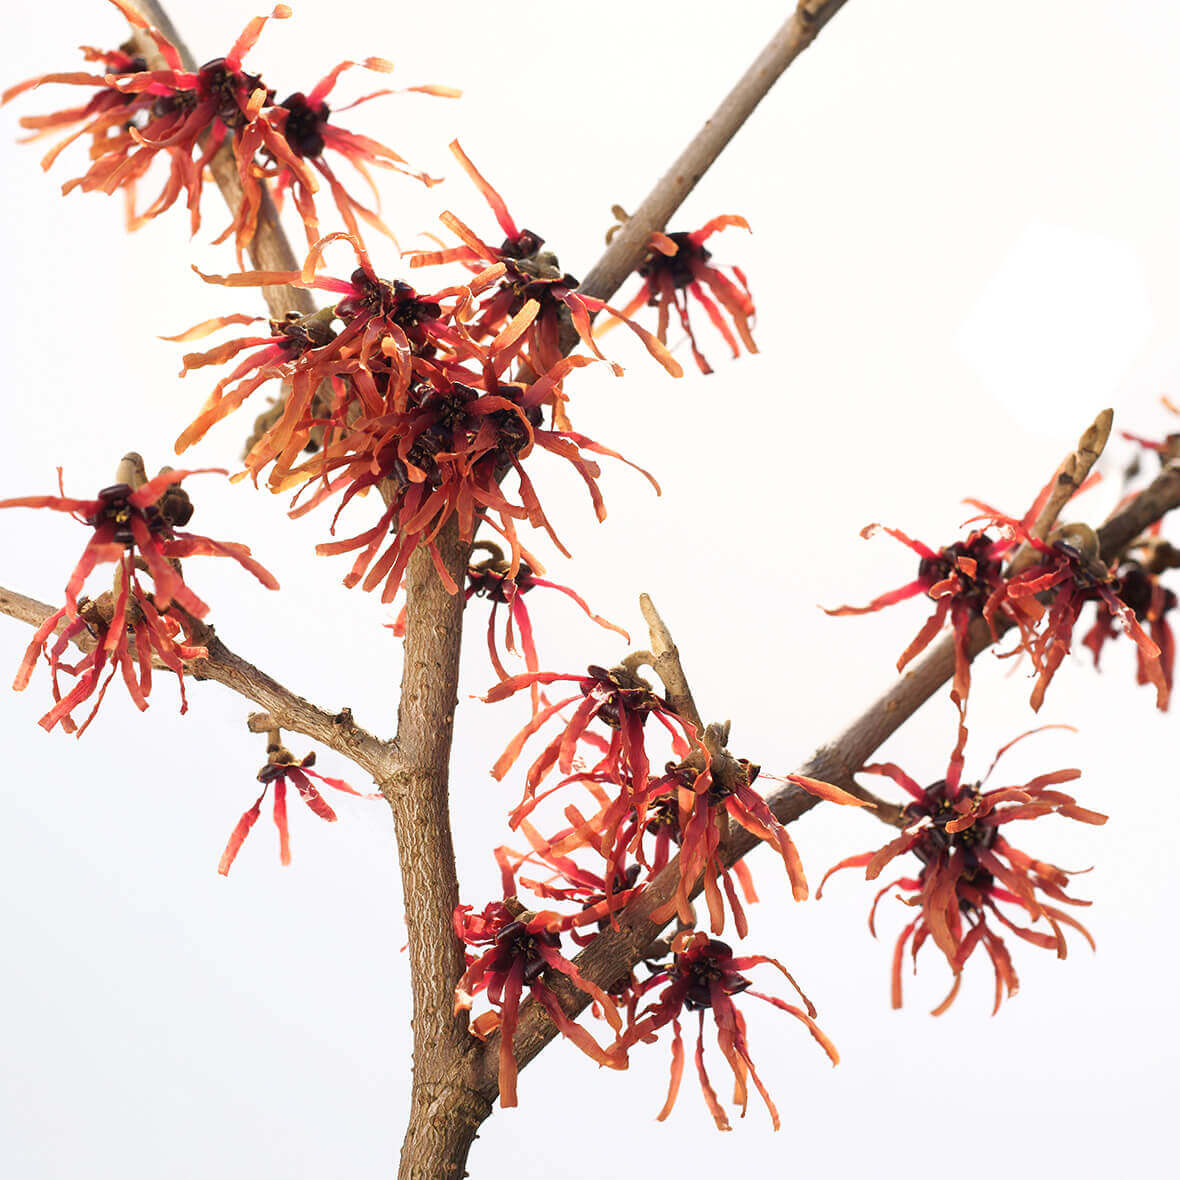 Witch hazel benefits – wound healing, soothing, astringent